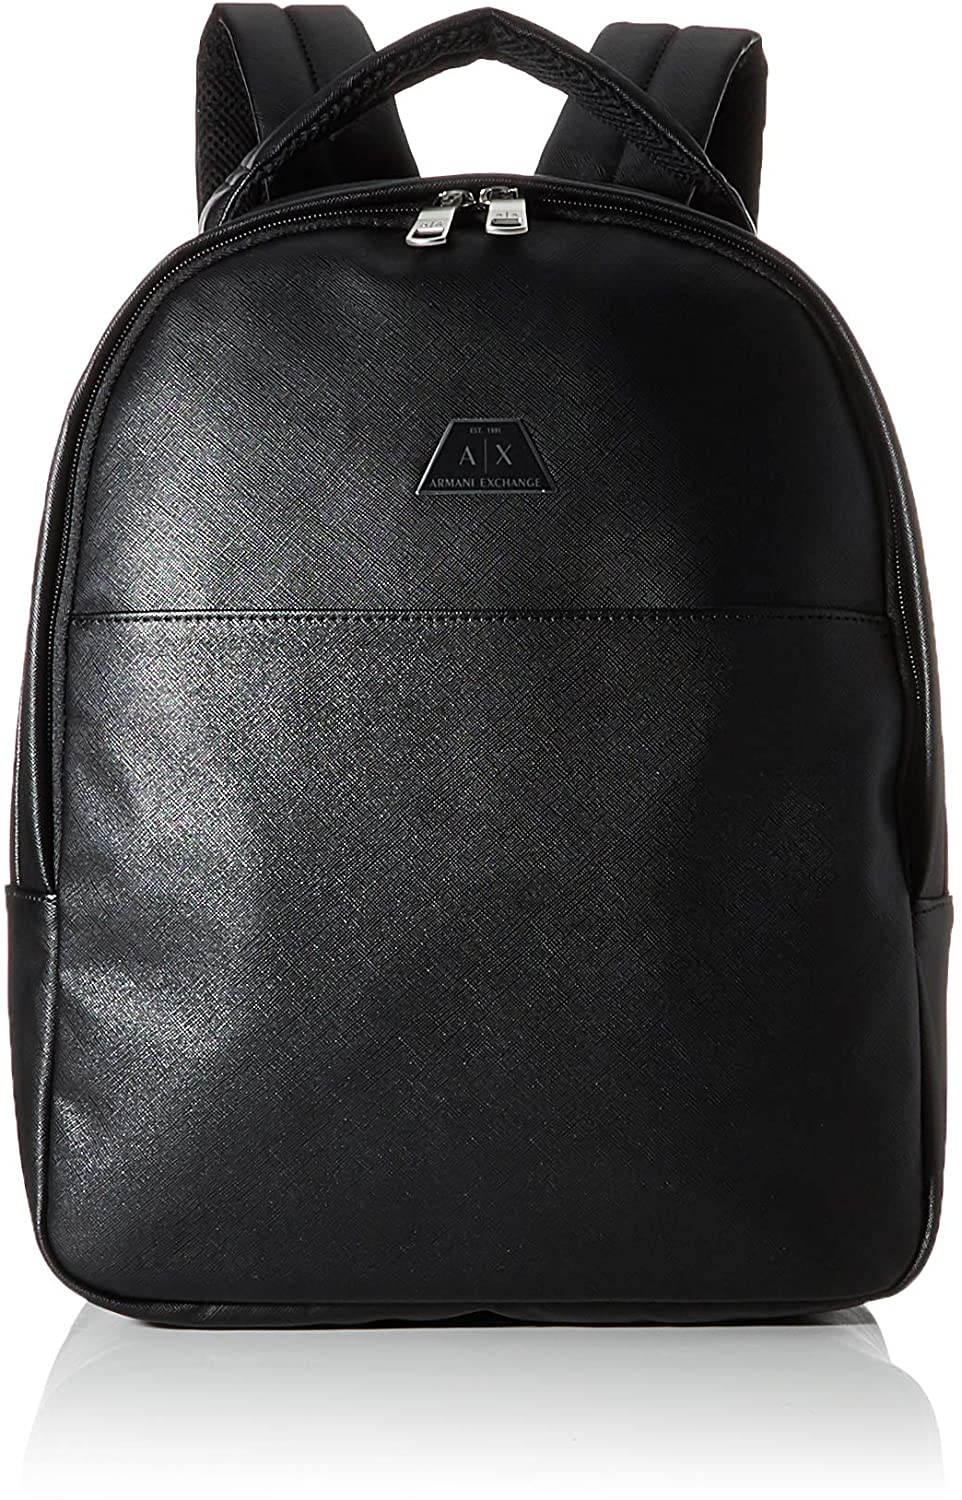 AX Armani Exchange Men's Allover Classic Print Backpack